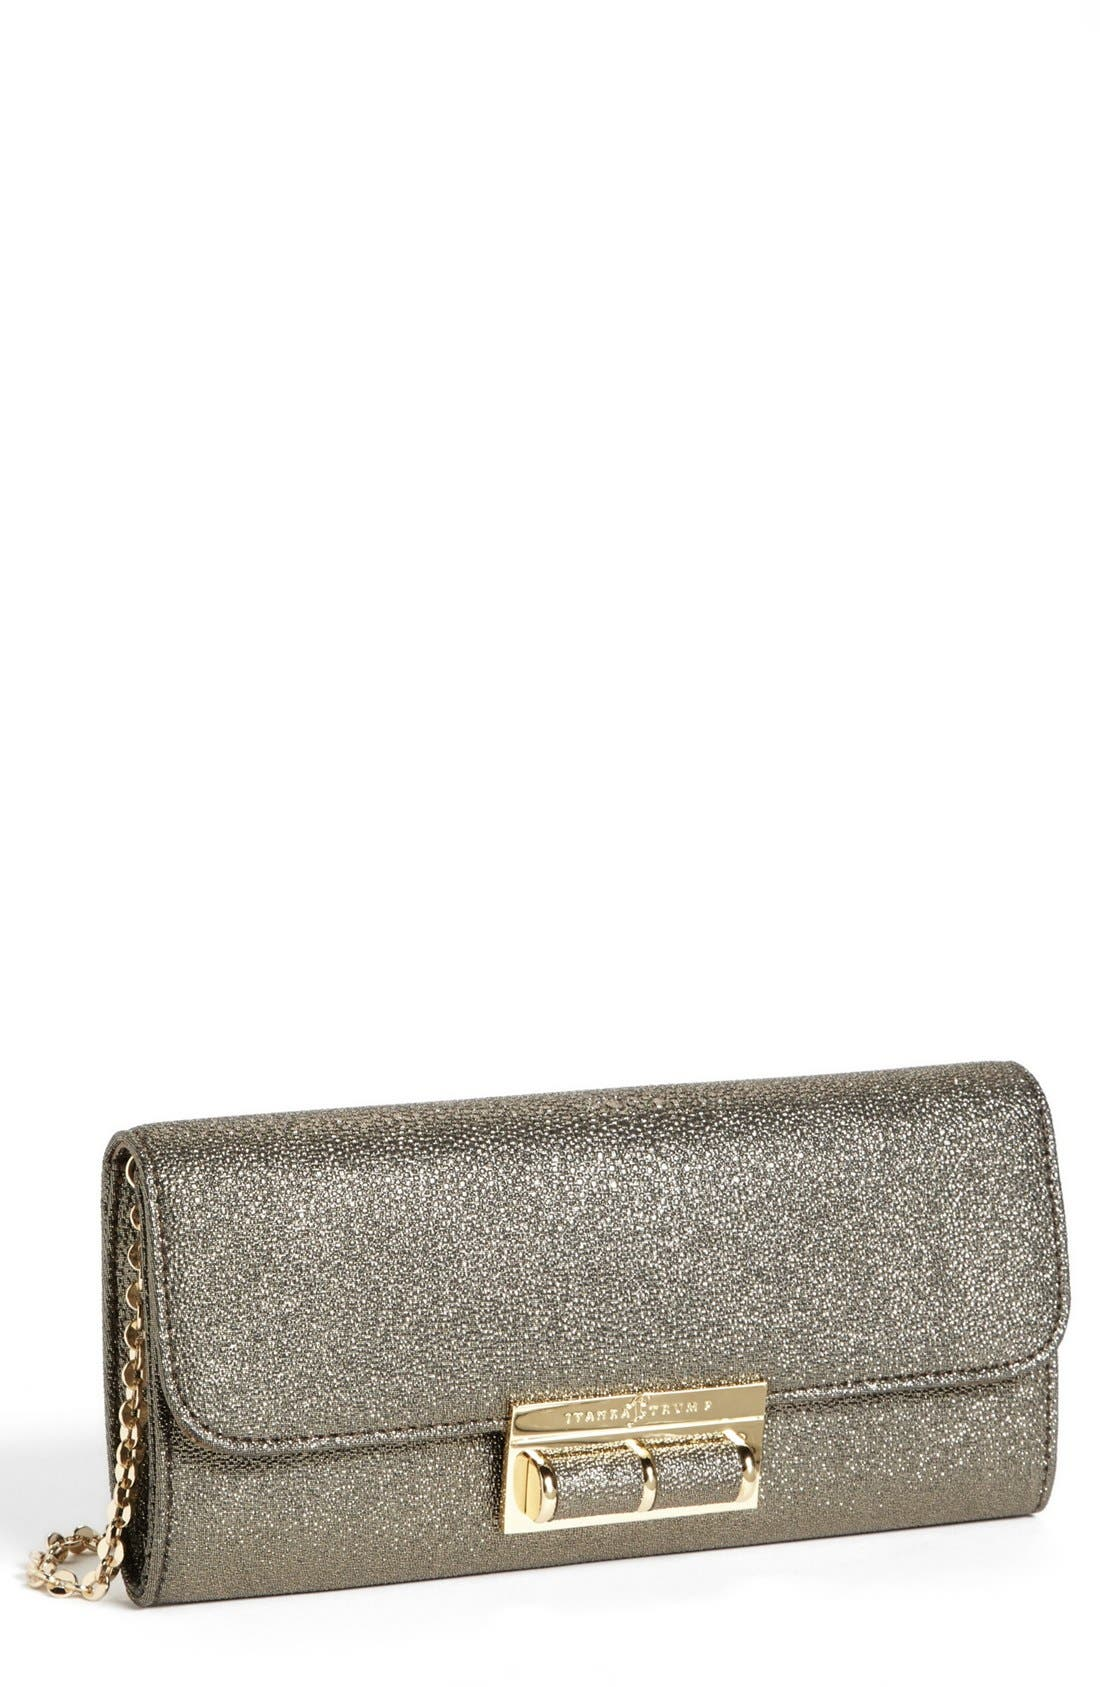 Main Image - Ivanka Trump Metallic Clutch